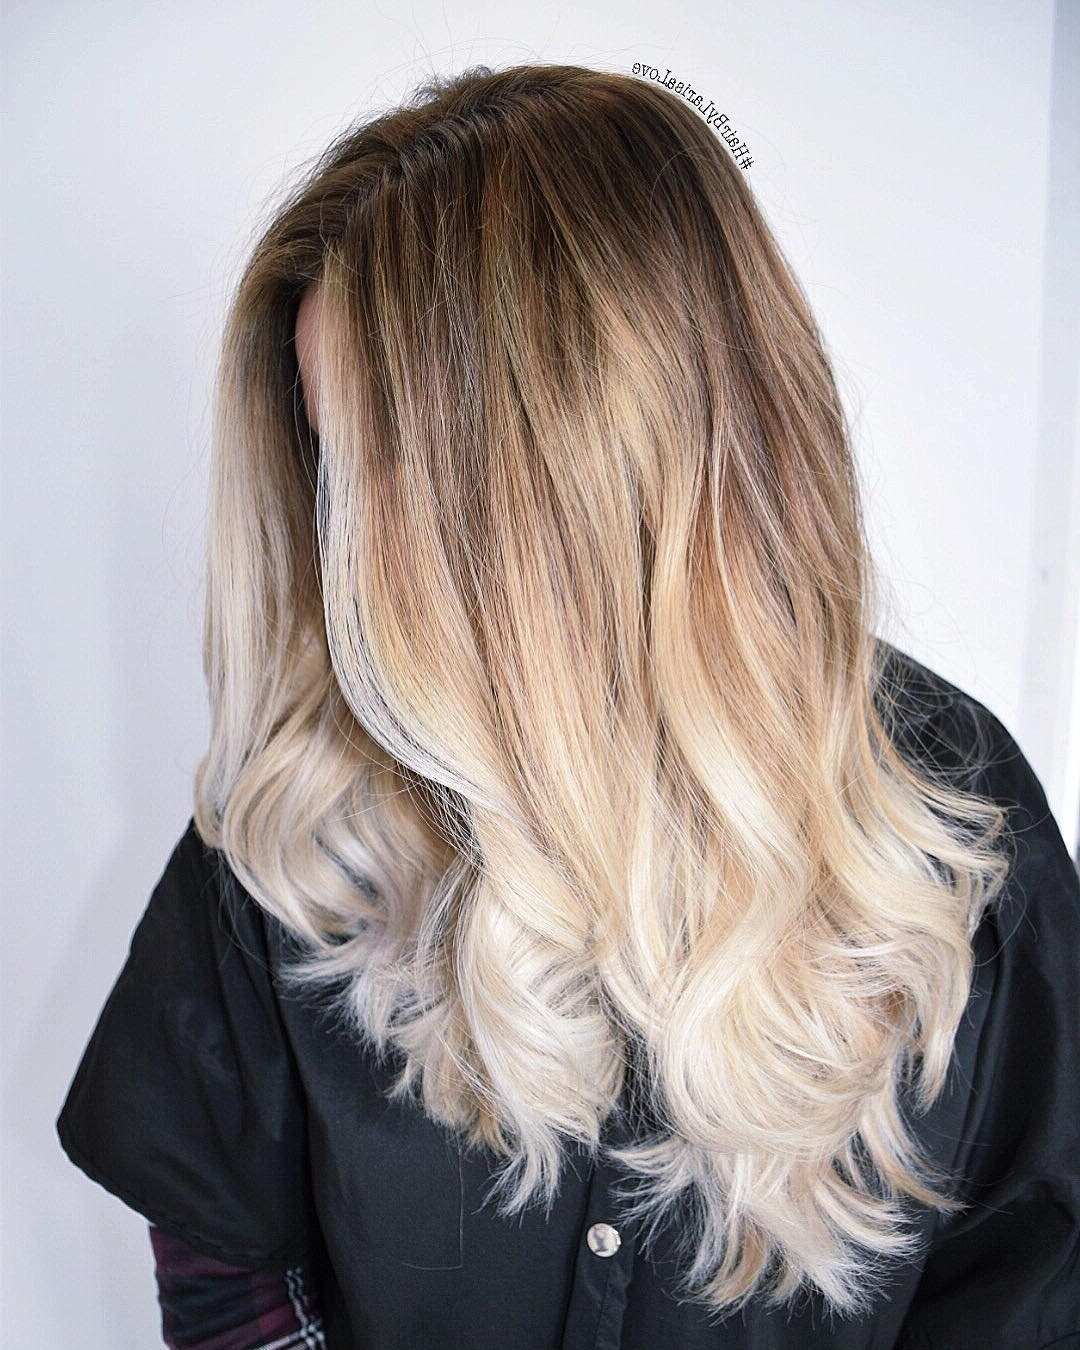 20 Perfect Ways To Get Beach Waves In Your Hair {2018 Update} Within Popular Blonde Ponytail Hairstyles With Beach Waves (Gallery 3 of 20)